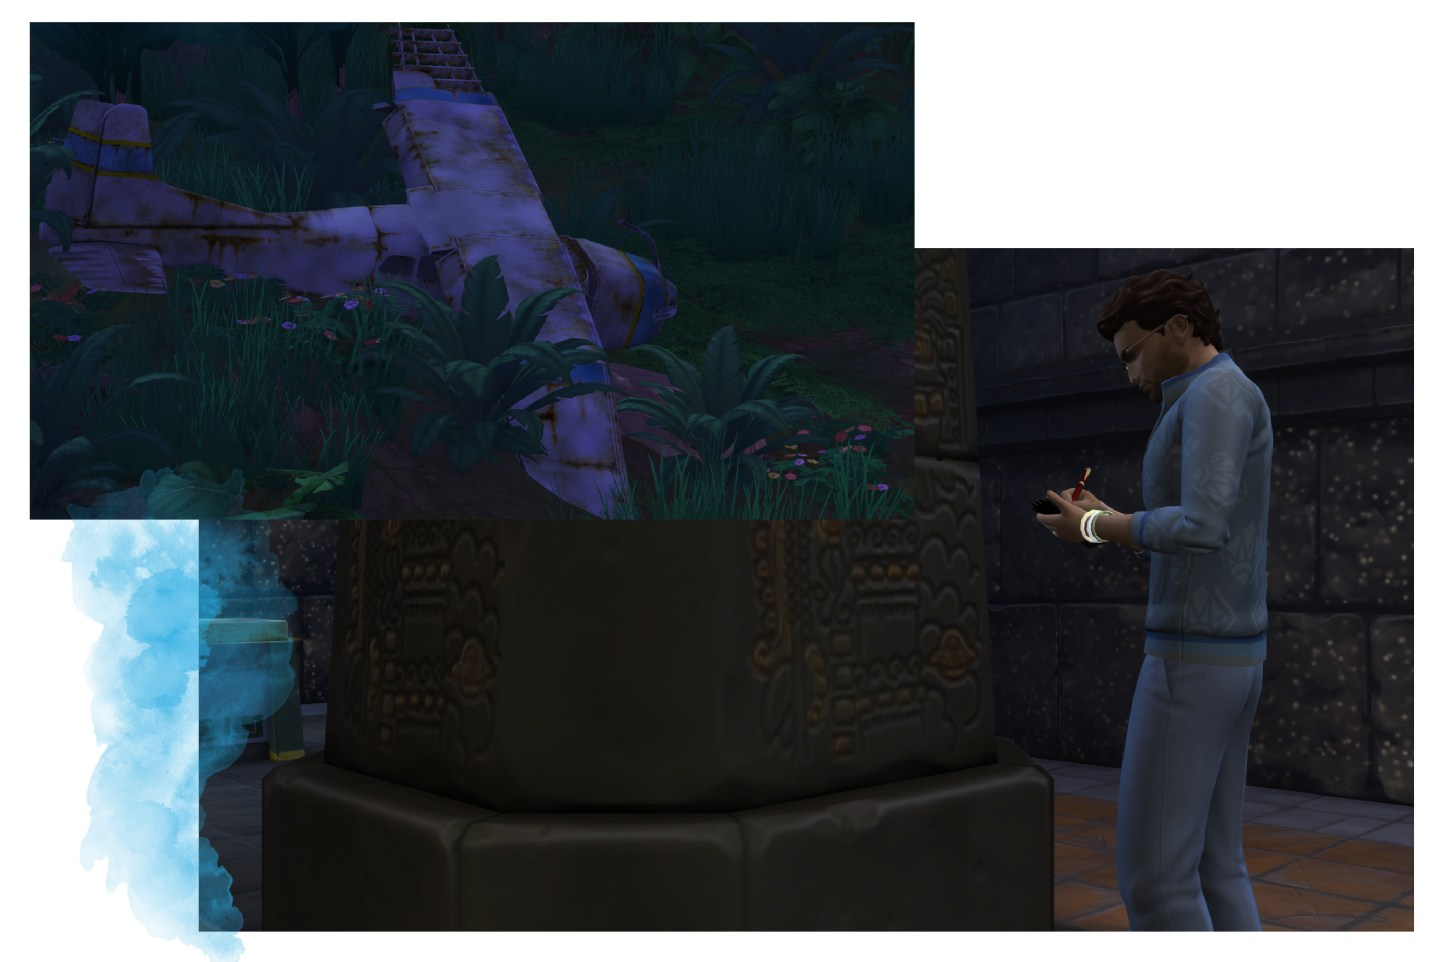 The Sims 4 Jungle Adventures.jpg